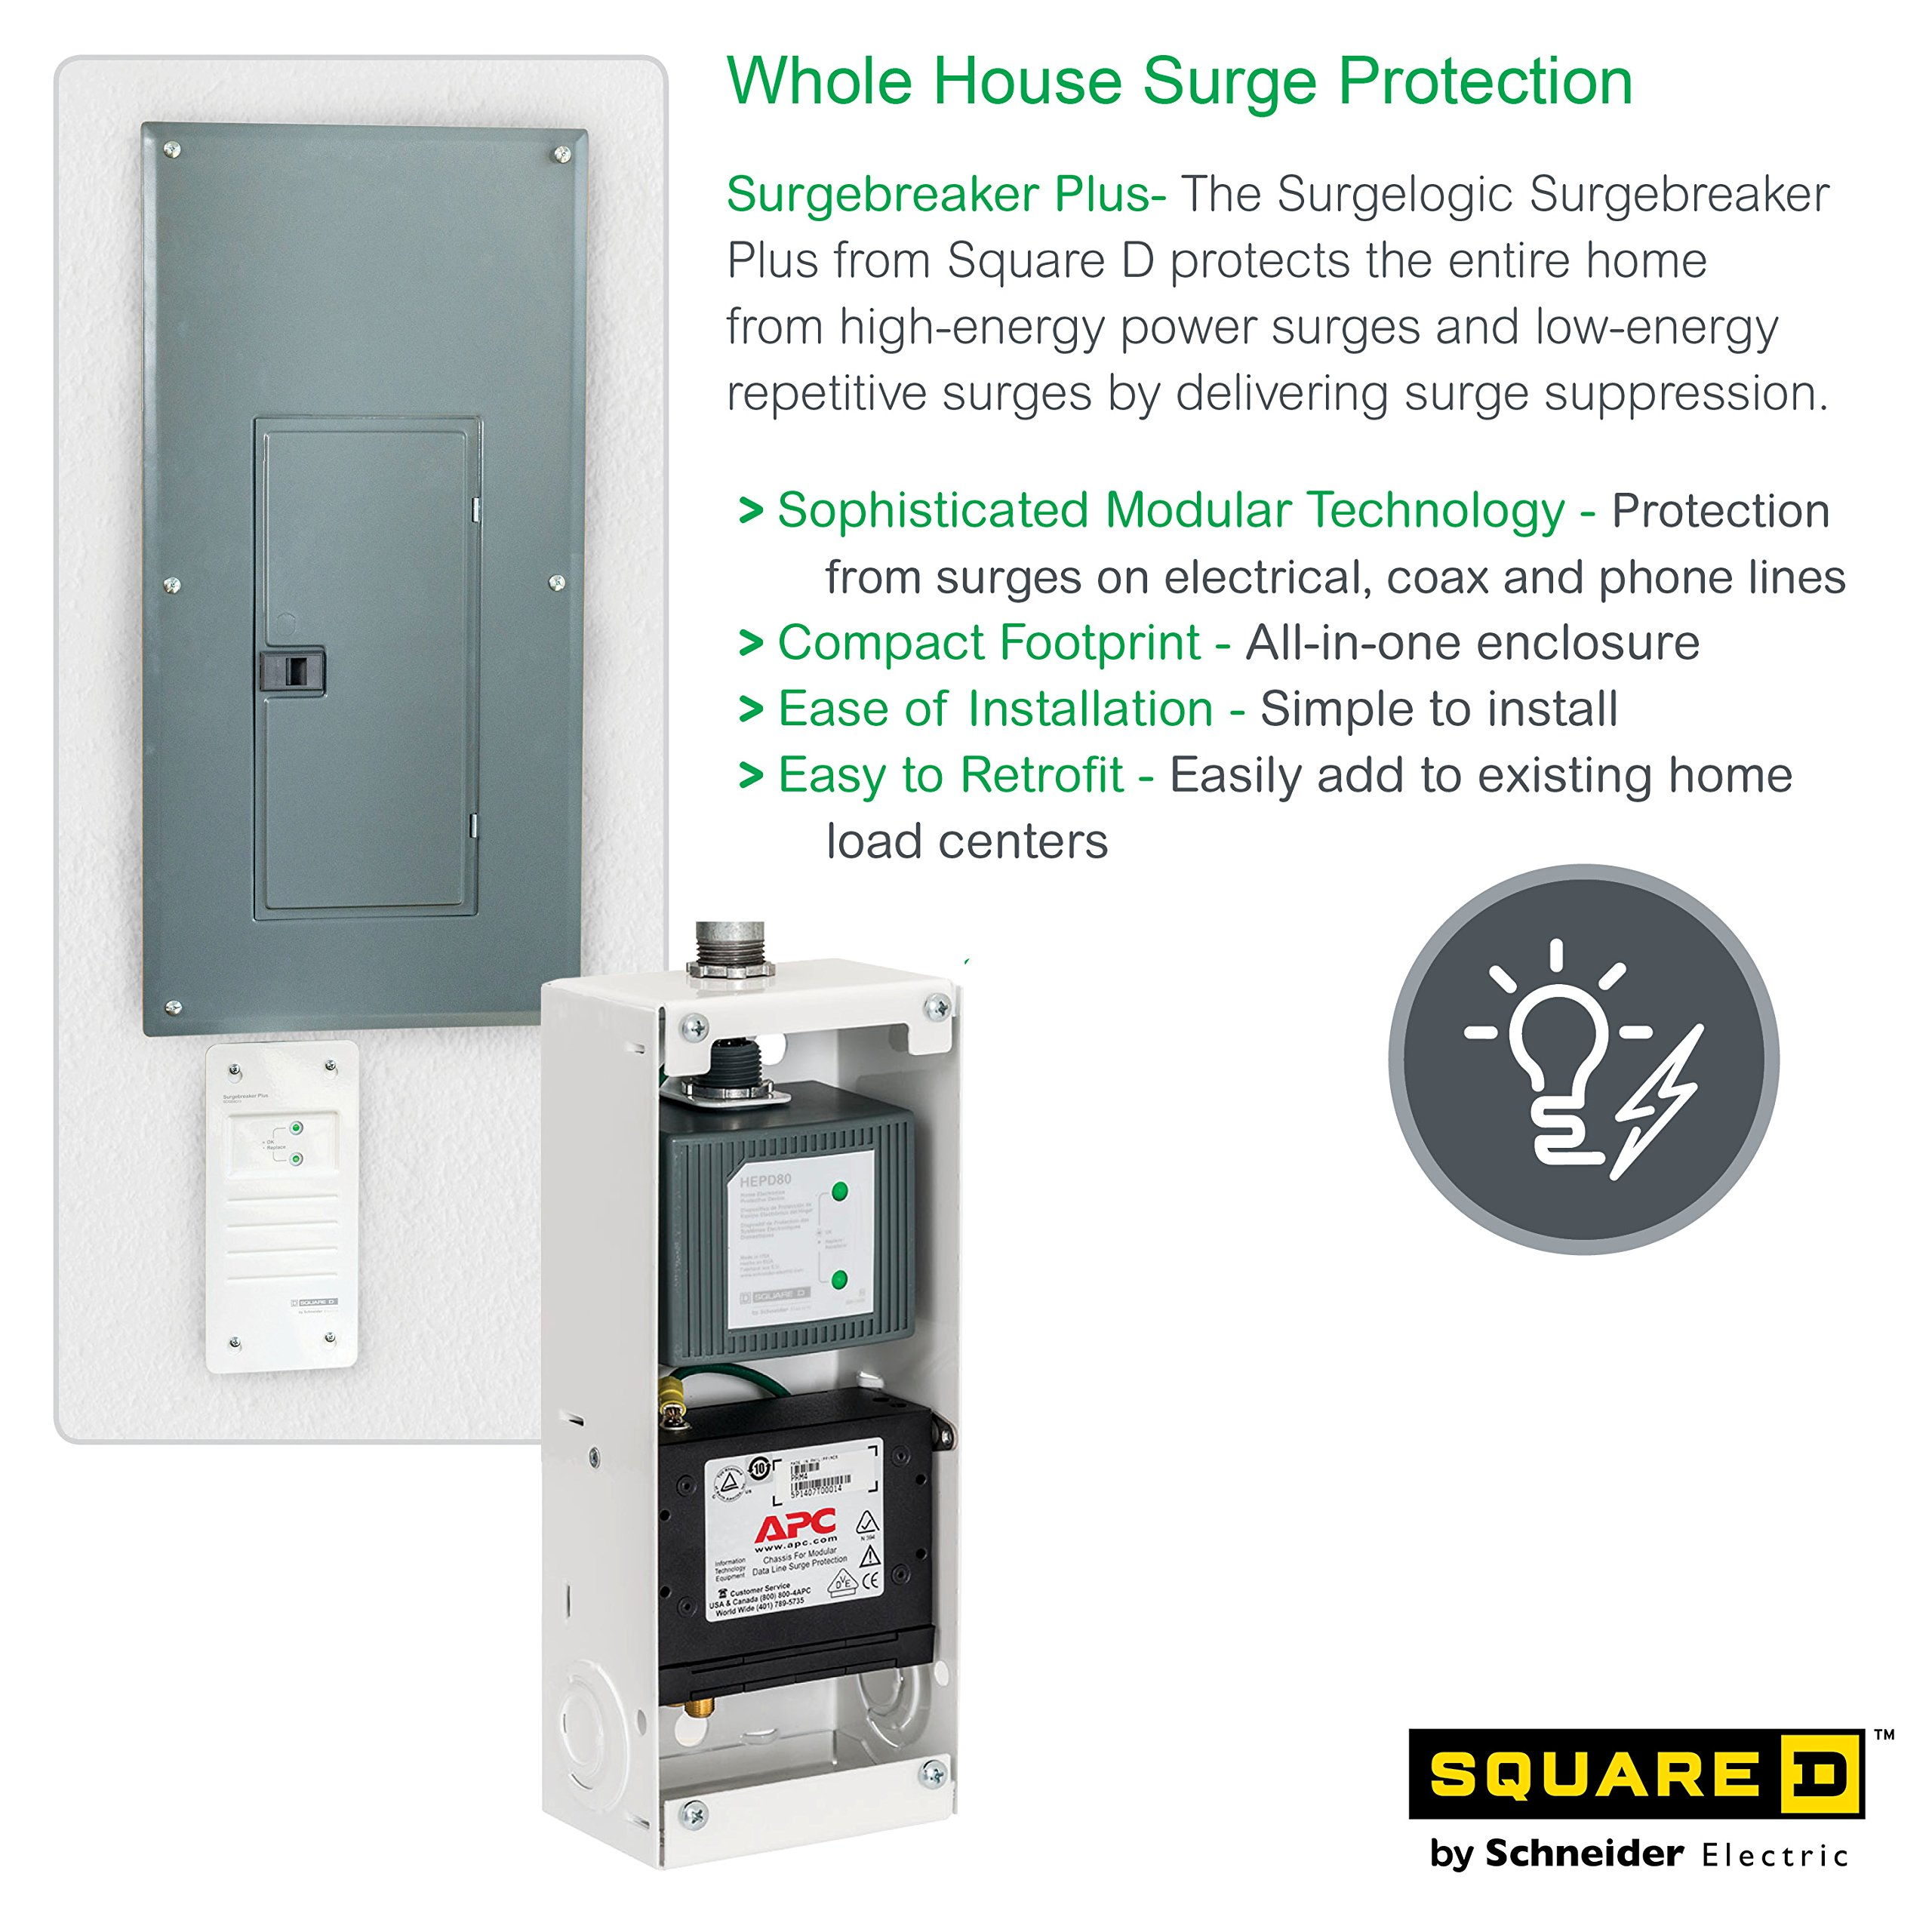 Square D by Schneider Electric SDSB80111 Surgebreaker Plus Whole House Surge Protector 120/240-volt with Cable, Telephone, and Ethernet Protection by Square D by Schneider Electric